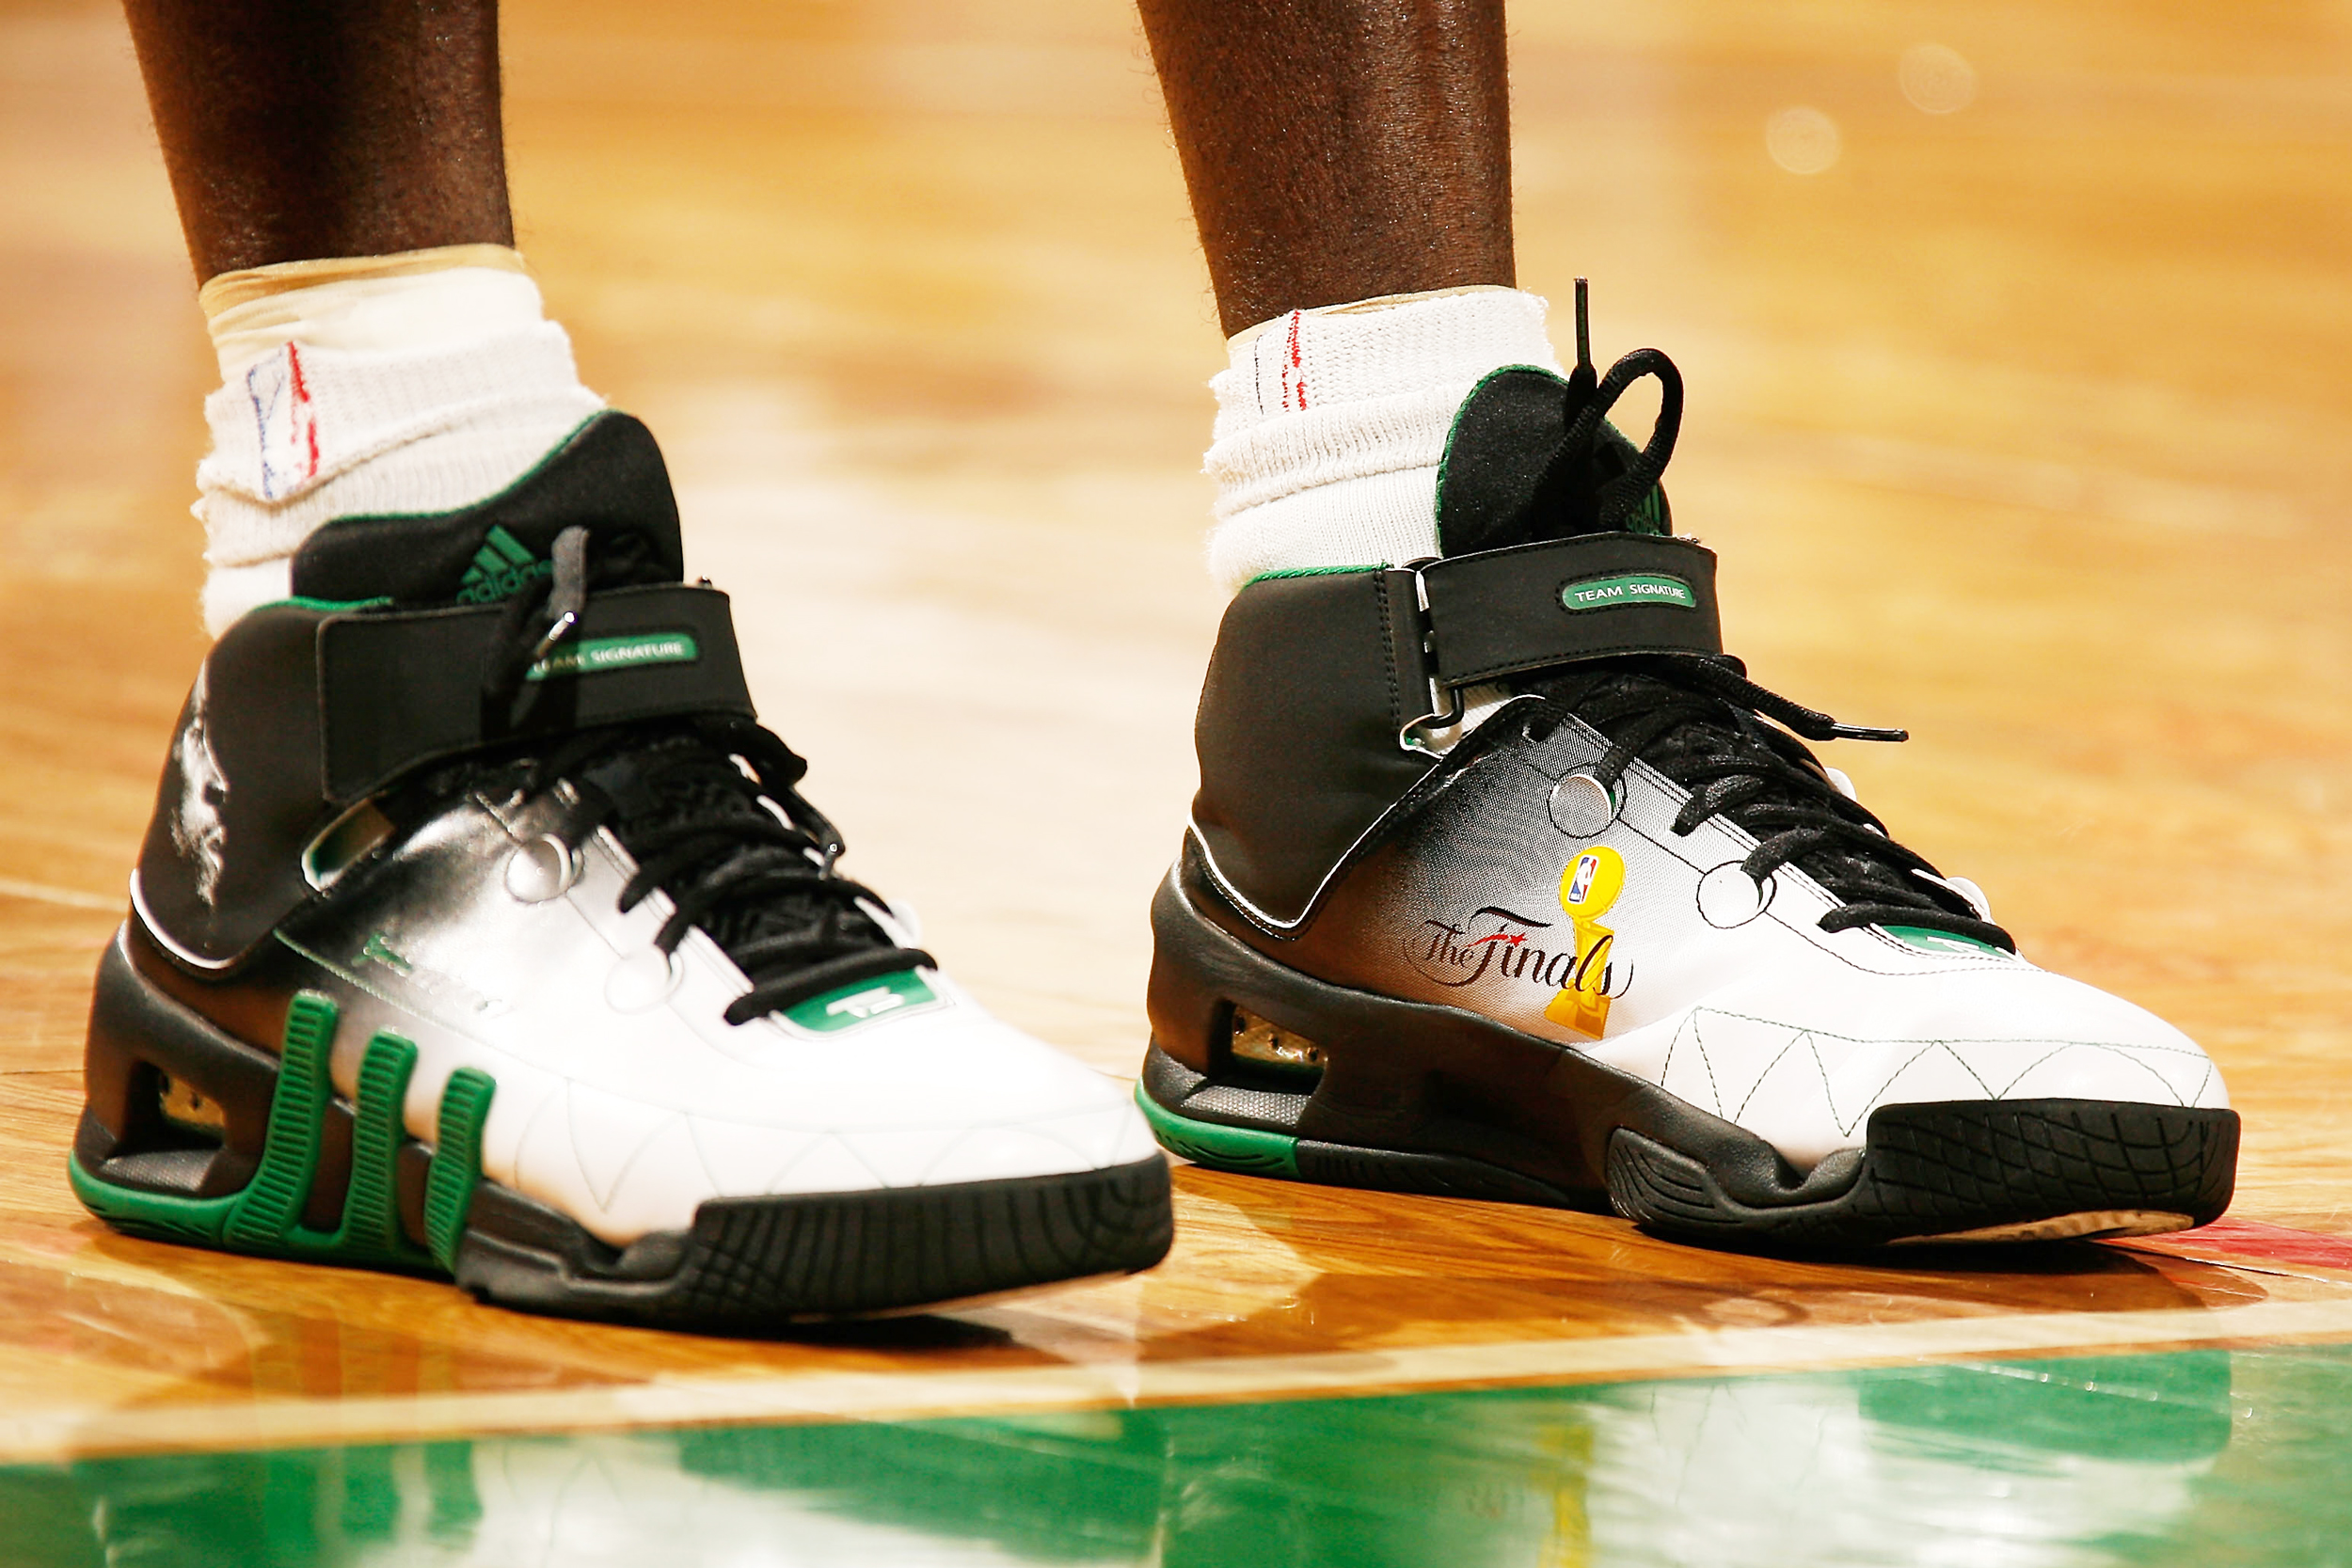 eaa95dbc943 Kevin Garnett of the Boston Celtics wears a pair of unique Adidas sneakers  in honor of the 2008 NBA Finals against the Los Angeles Lakers on June 17